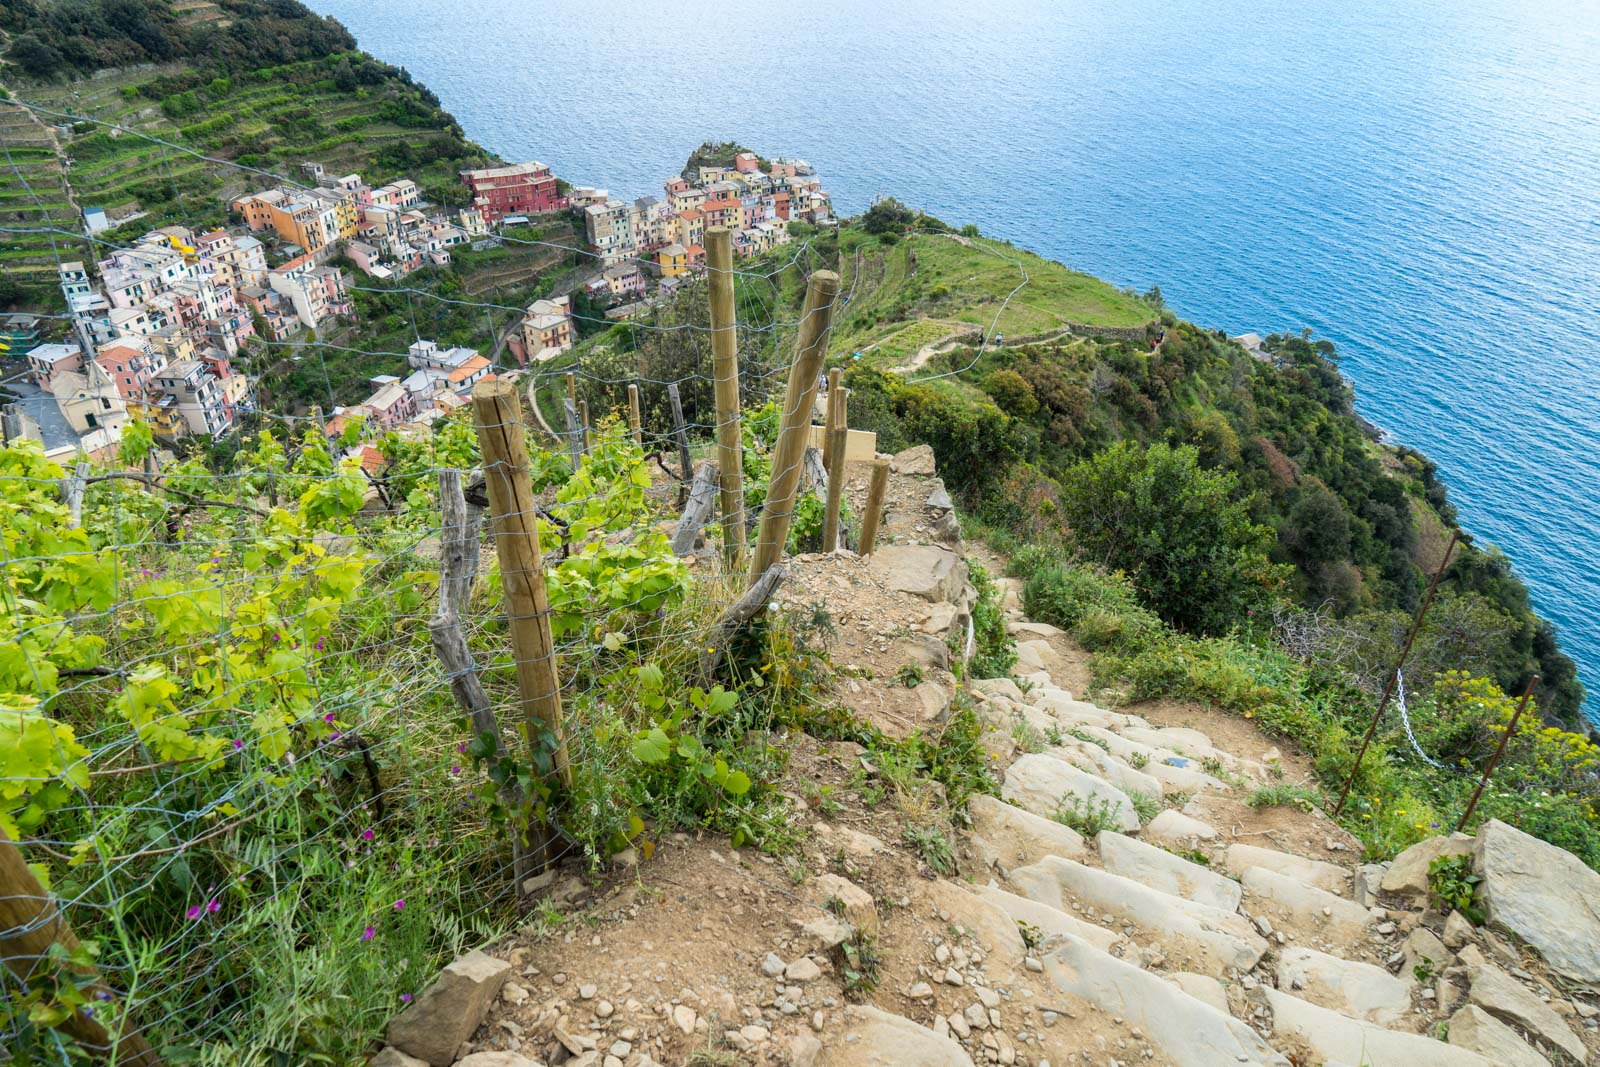 A Guide For Hiking The Cinque Terre In Italy